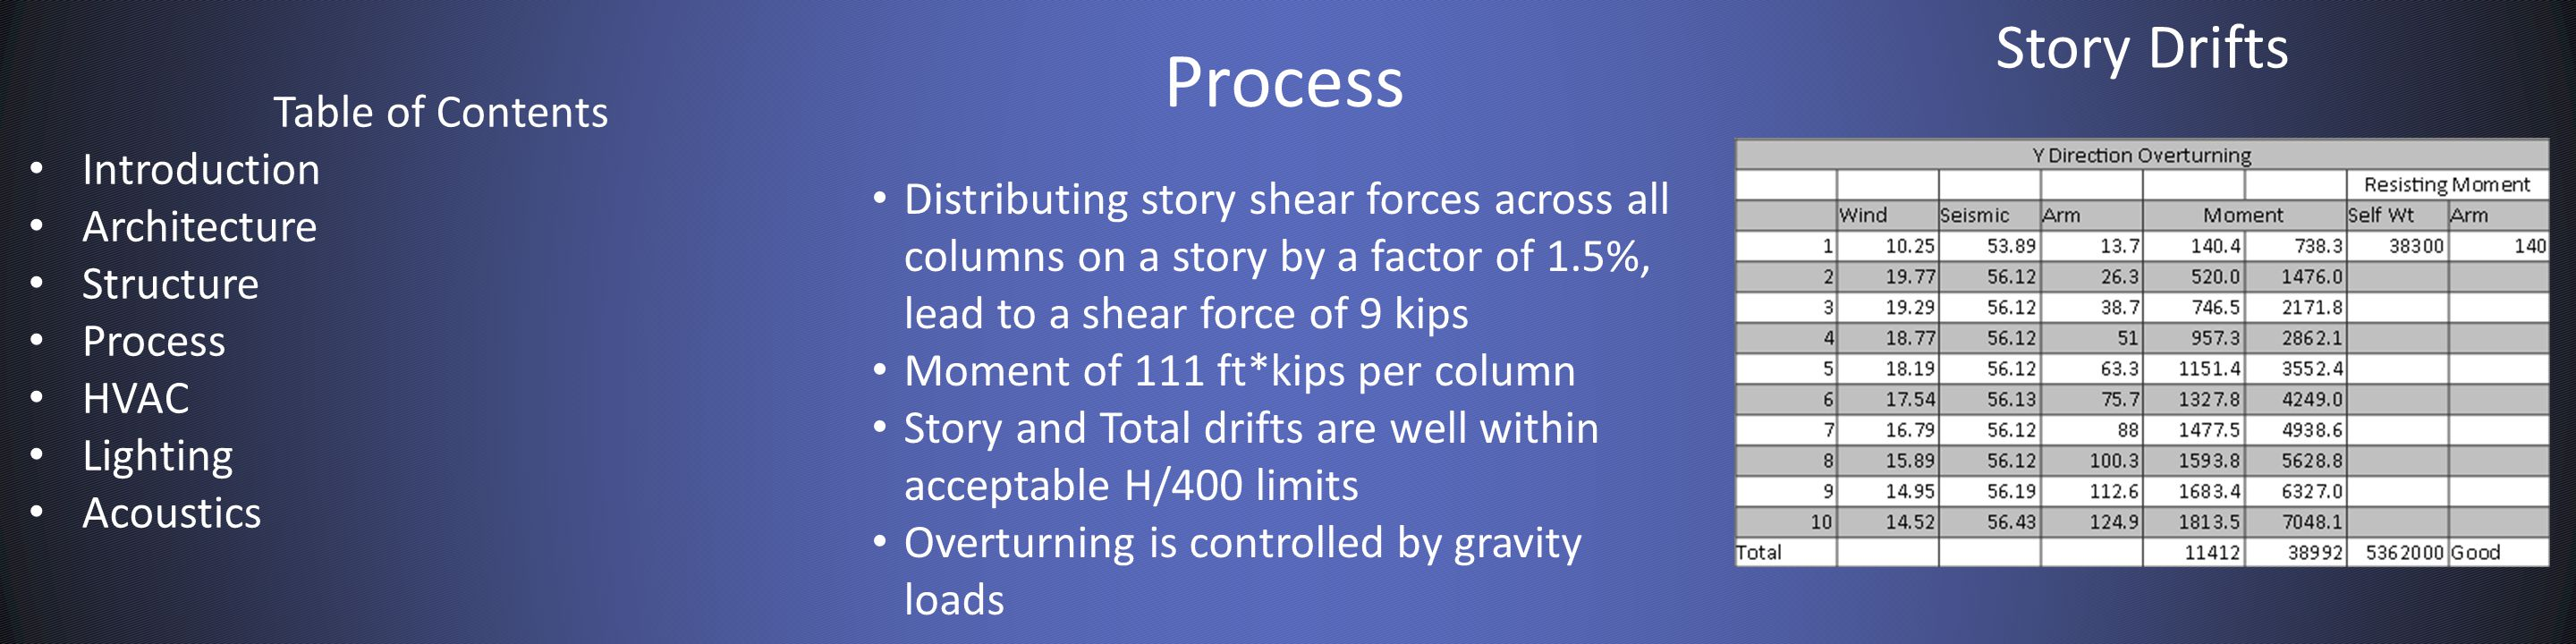 Process Story Drifts Distributing story shear forces across all columns on a story by a factor of 1.5%, lead to a shear force of 9 kips Moment of 111 ft*kips per column Story and Total drifts are well within acceptable H/400 limits Overturning is controlled by gravity loads Table of Contents Introduction Architecture Structure Process HVAC Lighting Acoustics